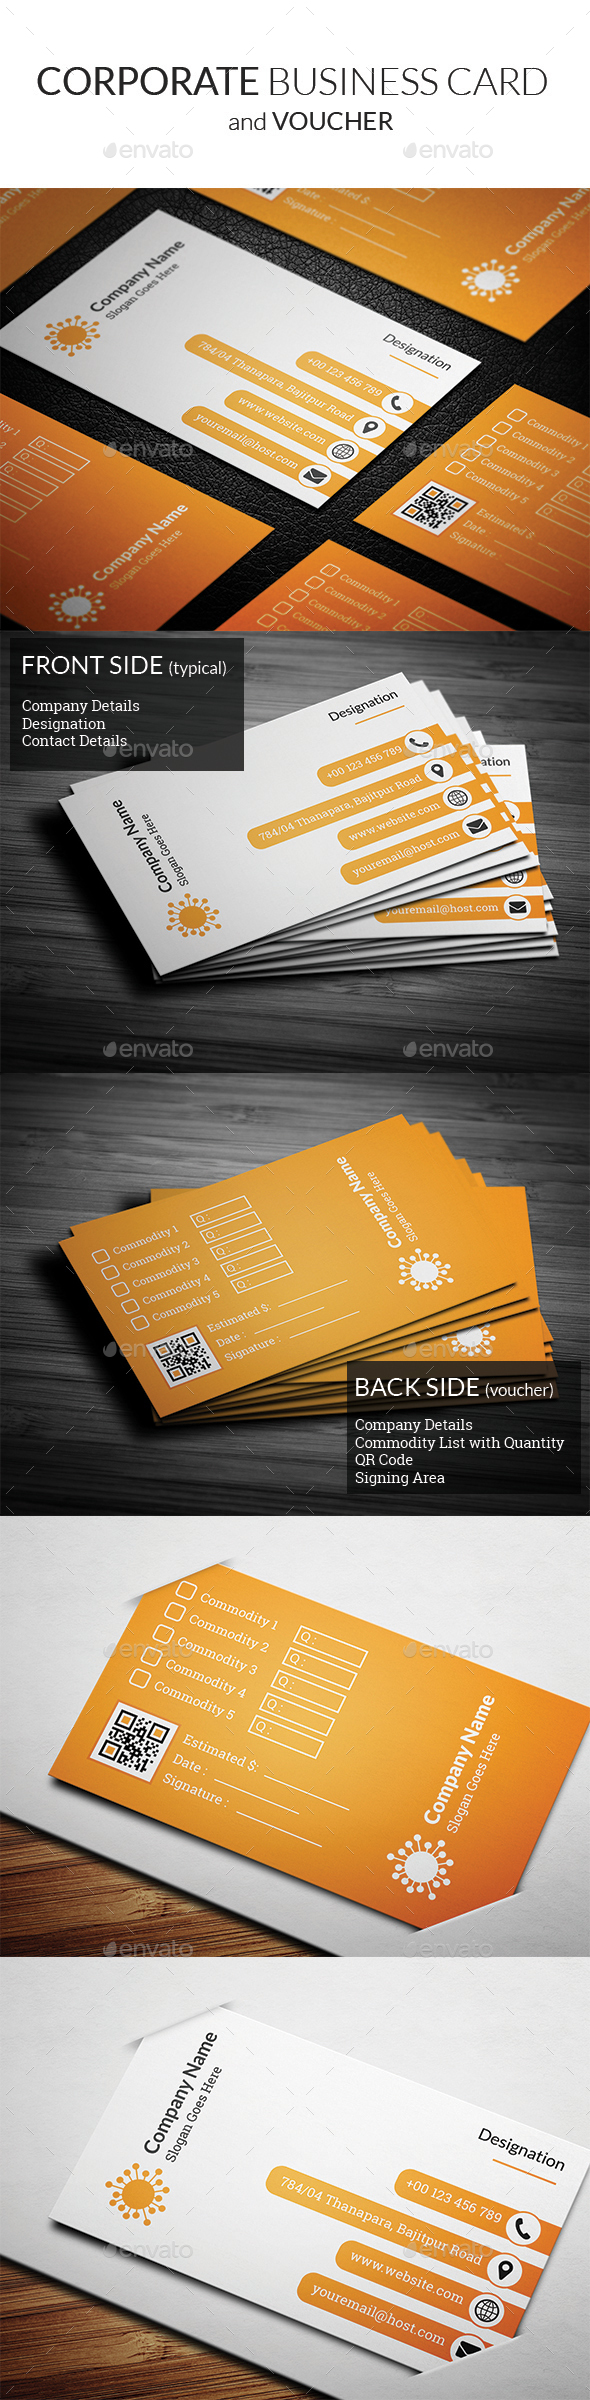 Corporate Business Card vol2 - Corporate Business Cards